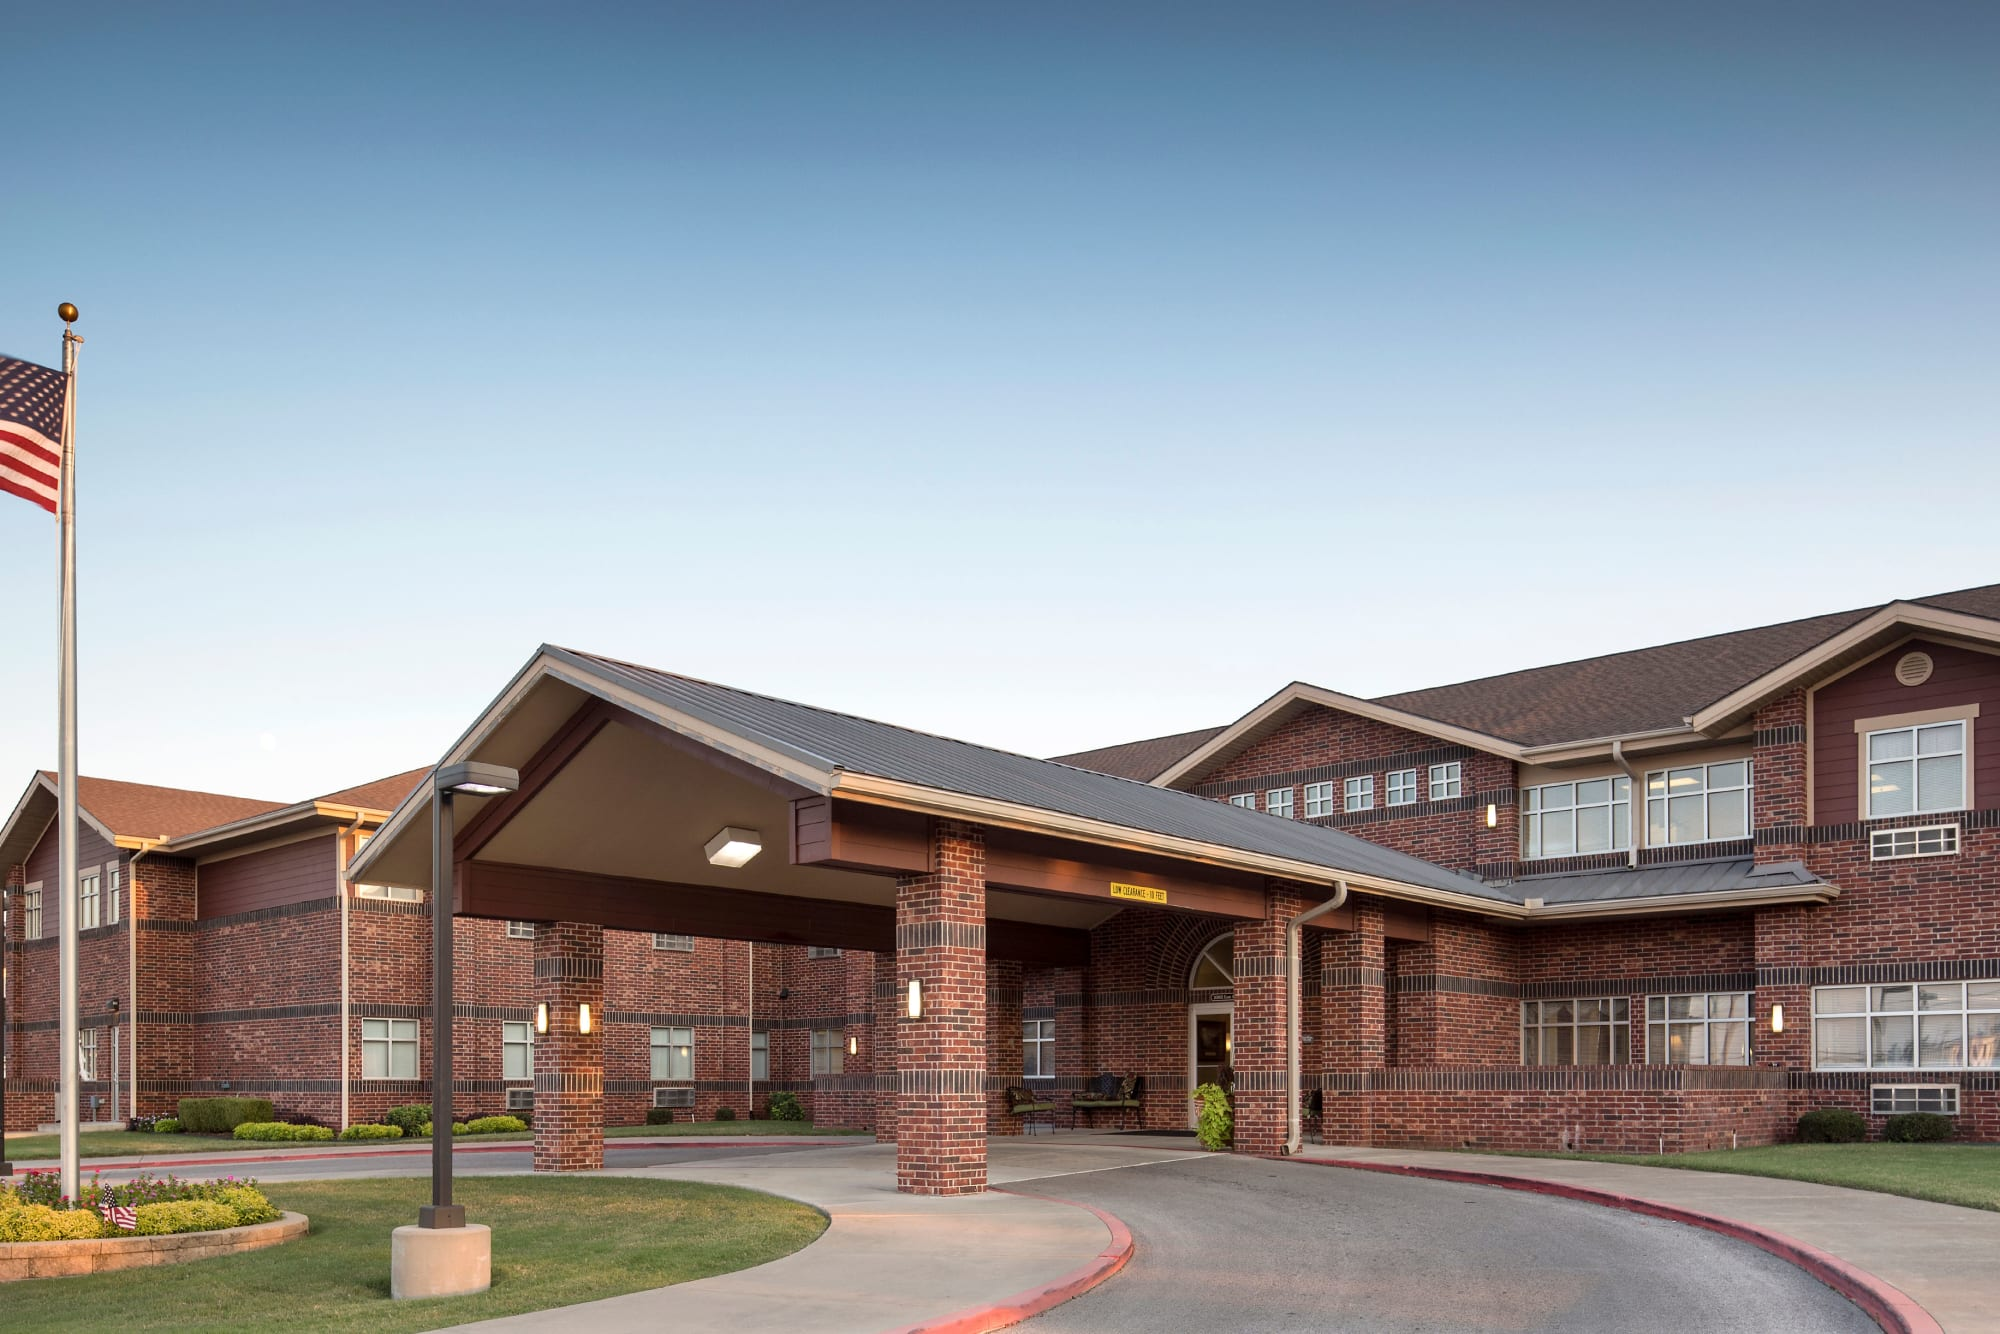 Covered main entrance at Canoe Brook Assisted Living & Memory Care in Catoosa, Oklahoma